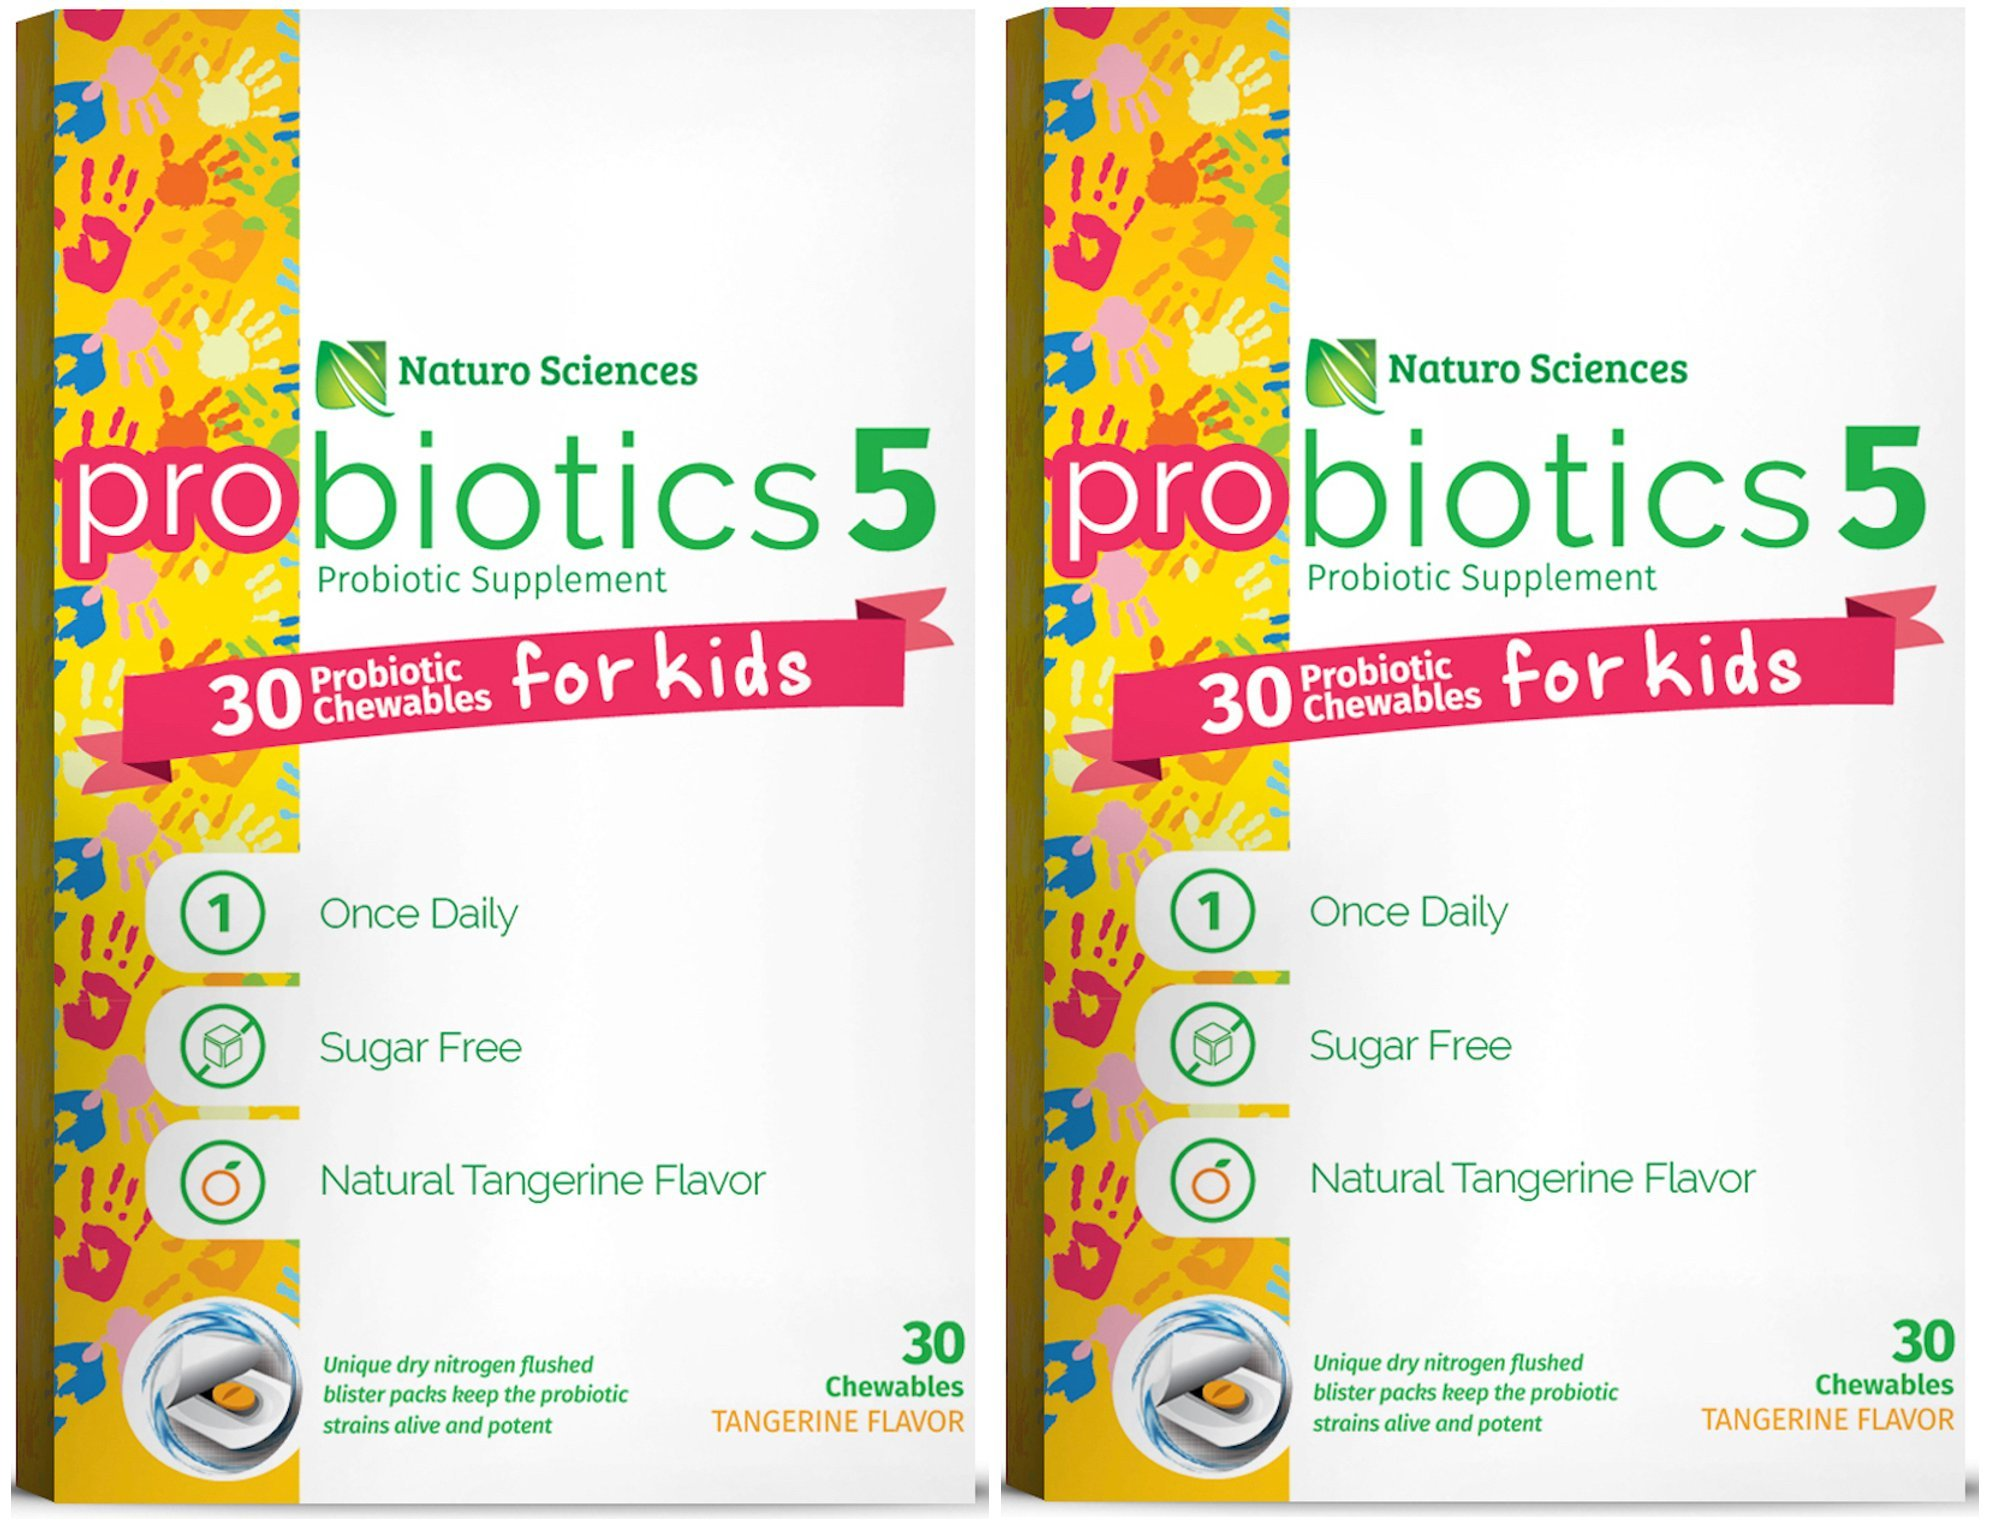 Naturo Sciences, Chewable Kids Digestive Probiotics, Nitrogen Filled Blister Packs for Best Product Freshness, 30 Once Daily Sugar Free Natural Tangerine Favor - Pack of Two